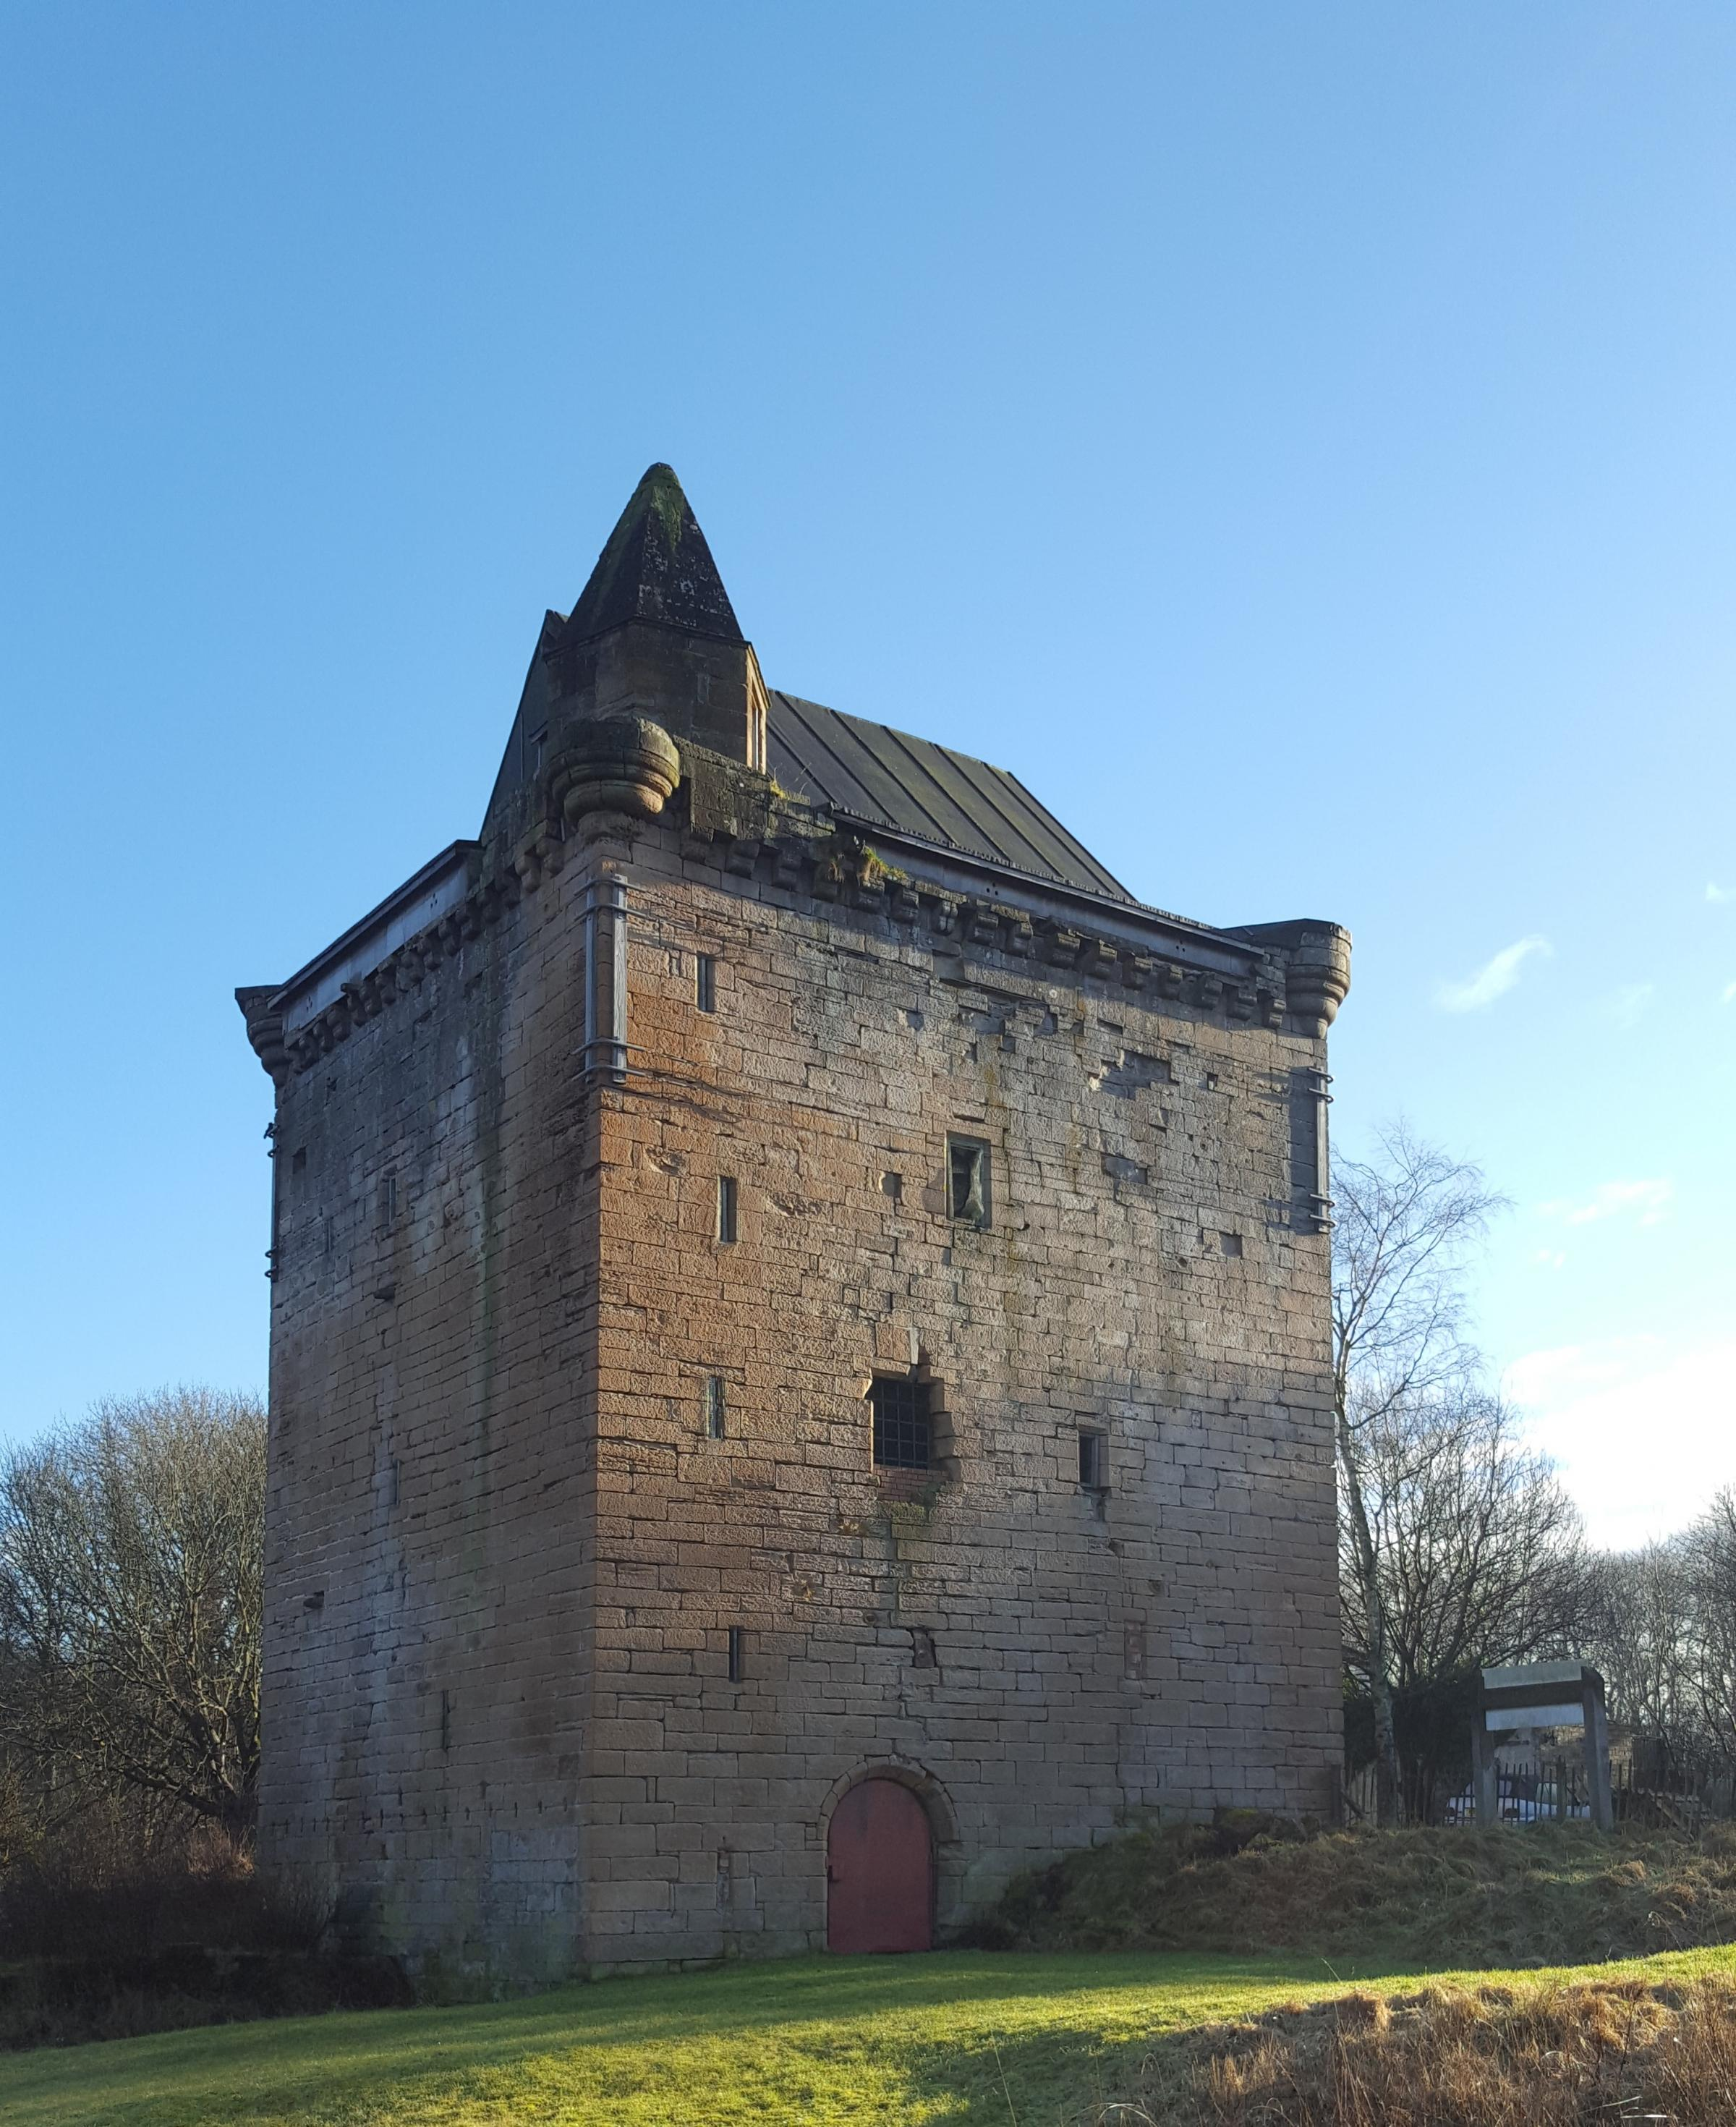 Sauchie Tower